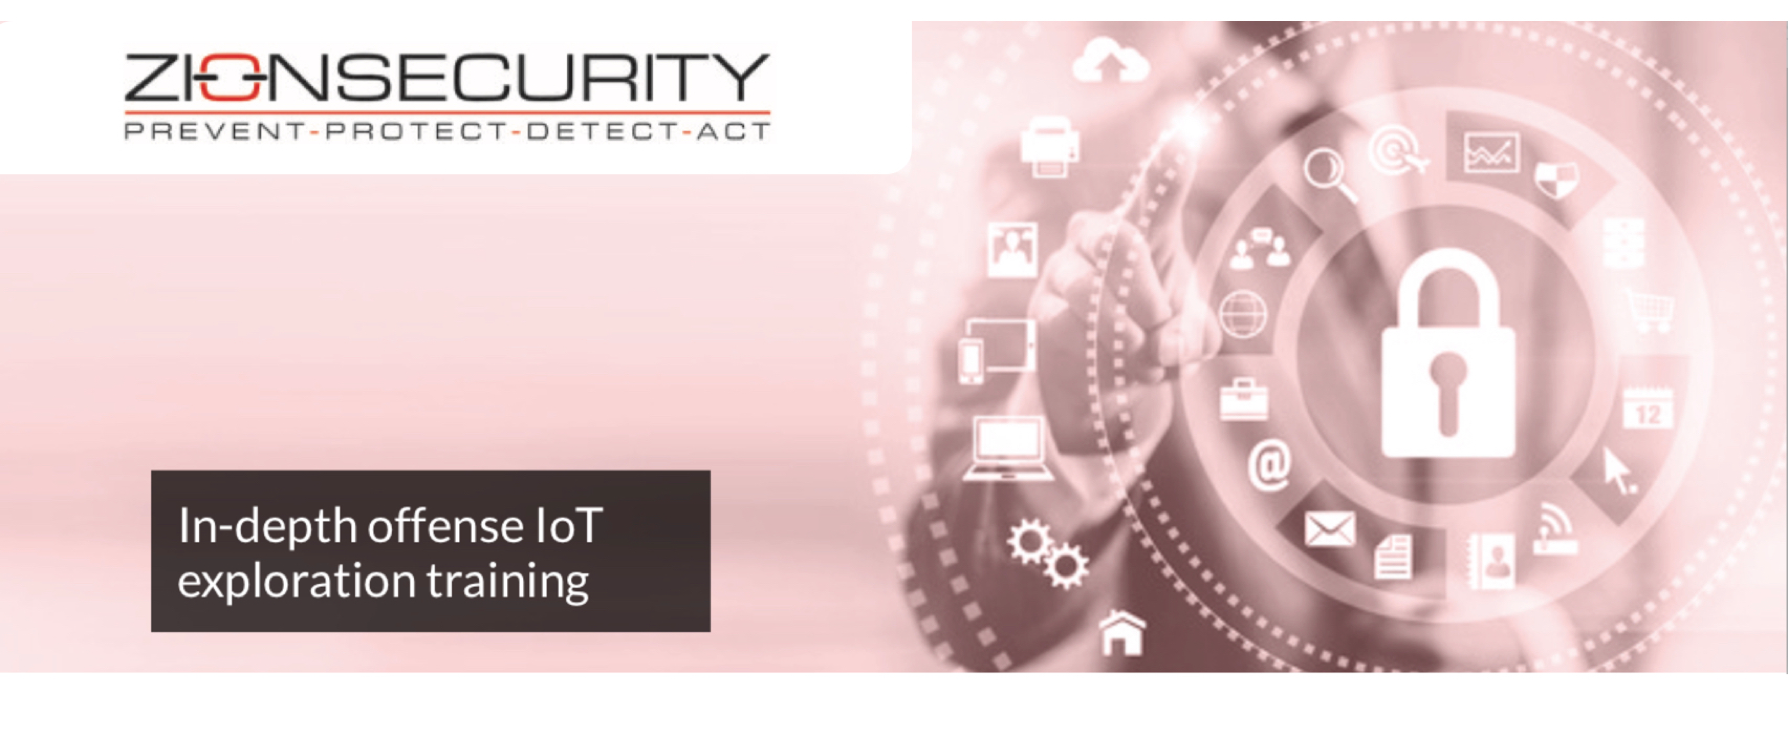 AE Partner Event: Zionsecurity IoT